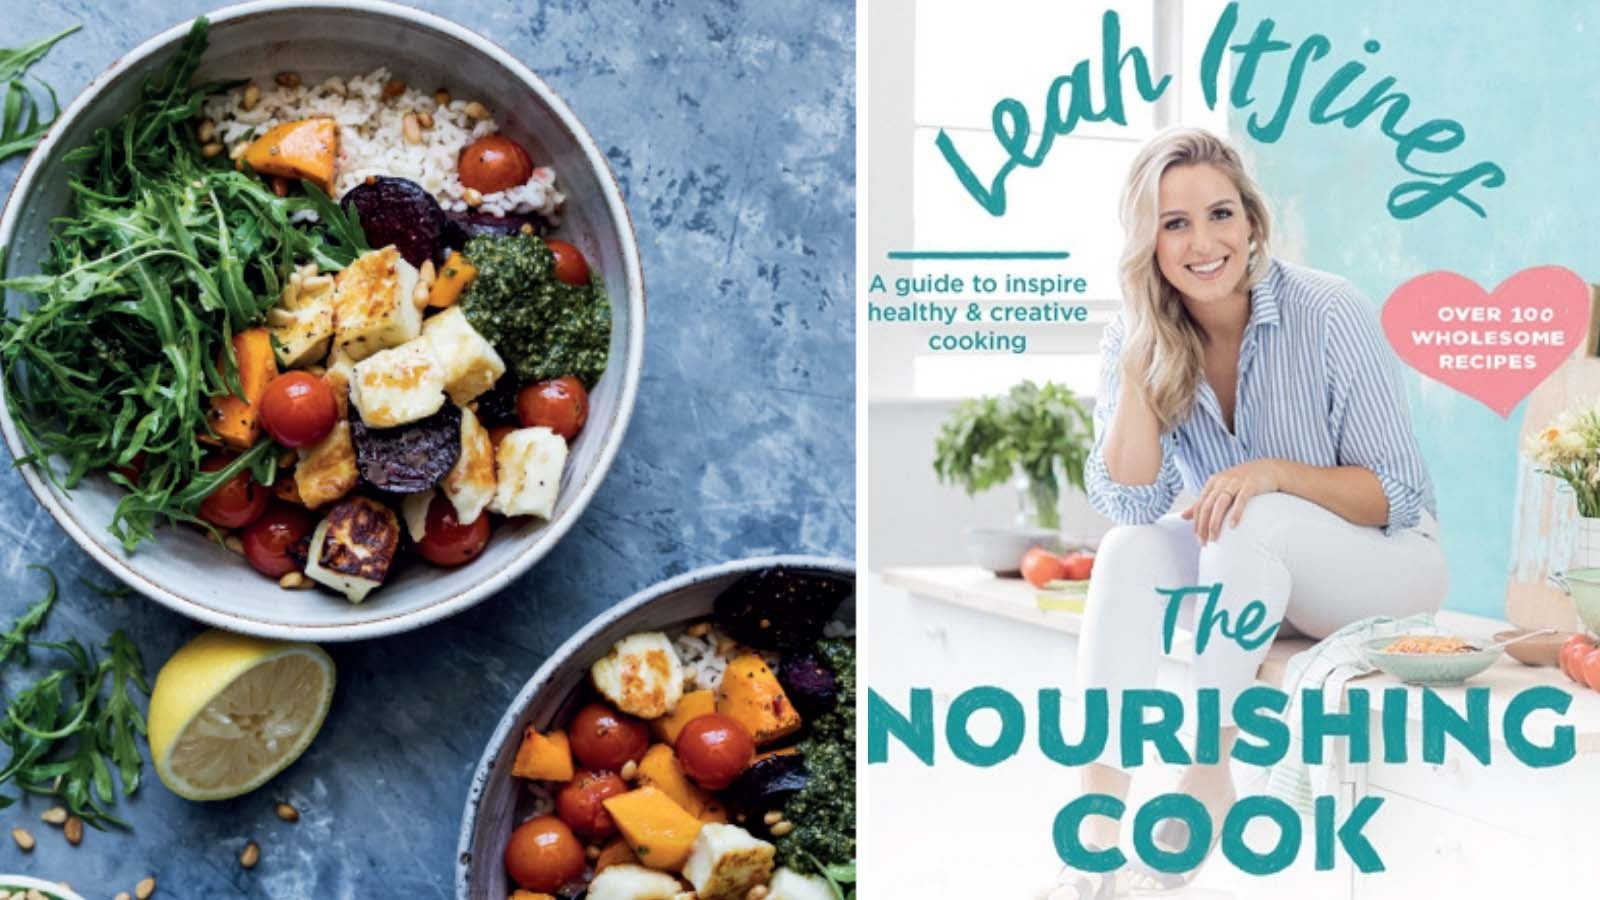 Leah Itsines - The Nourishing Cook Book cover next to a photo of food in a bowl